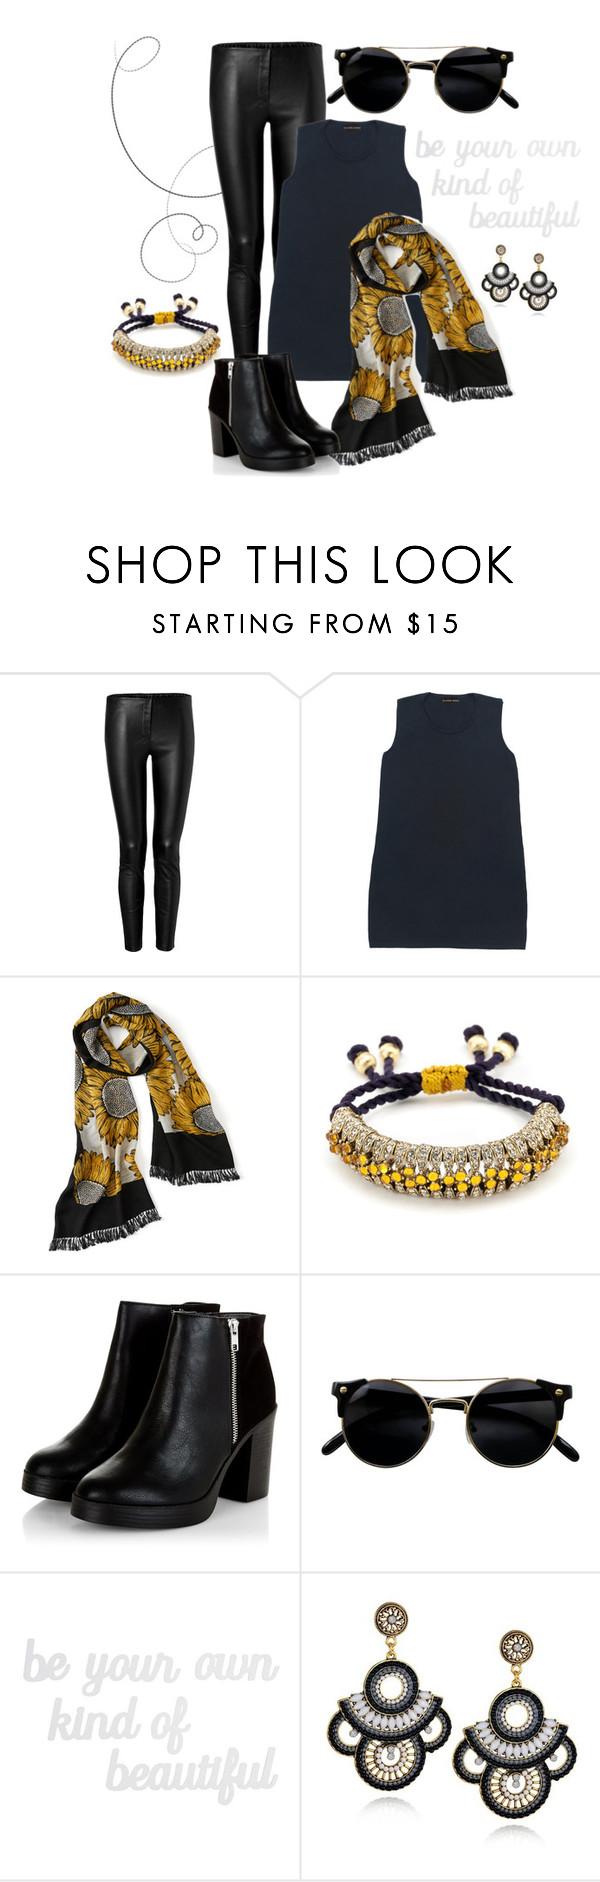 """Sunflower Scarf"" by slaterzorn ❤ liked on Polyvore featuring Tamara Mellon, Slater Zorn and PBteen"